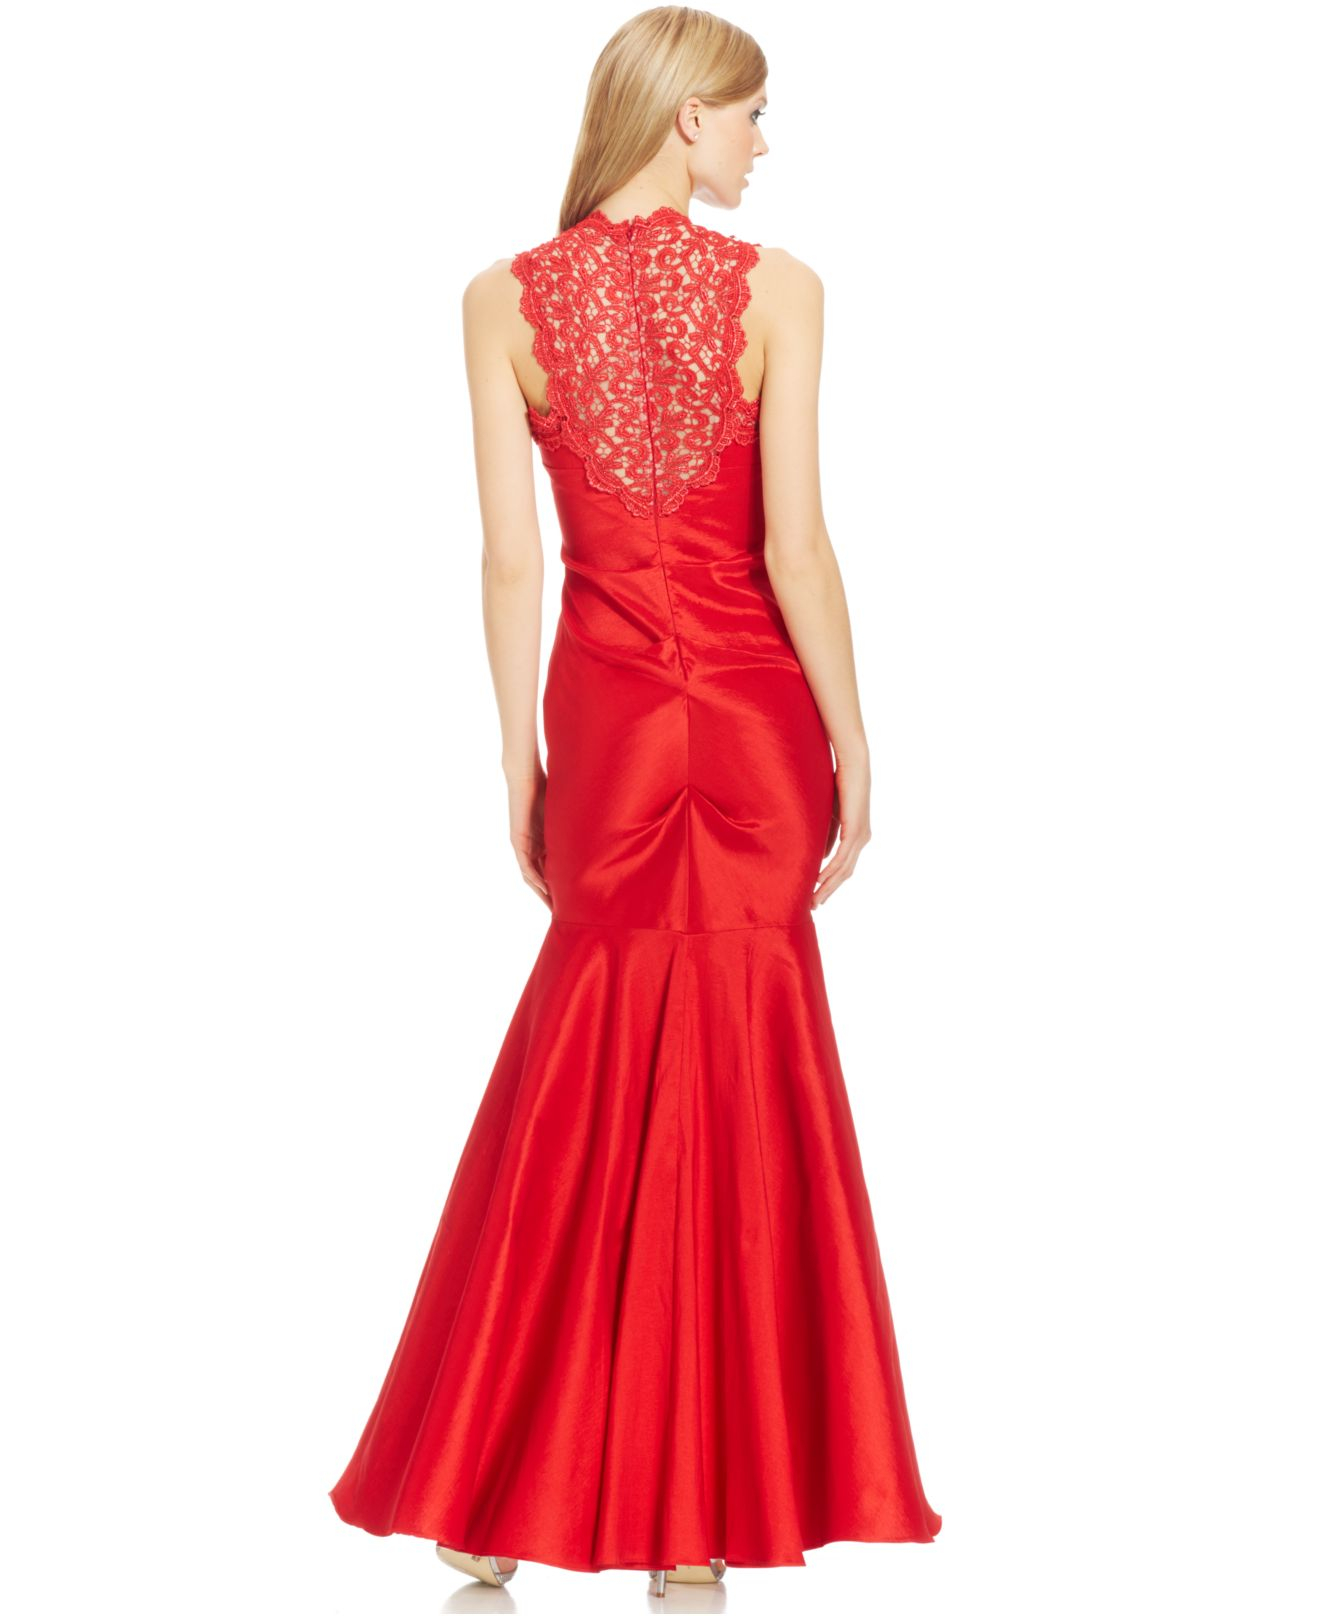 Lyst - Xscape Sleeveless Glitter Lace Mermaid Gown in Red